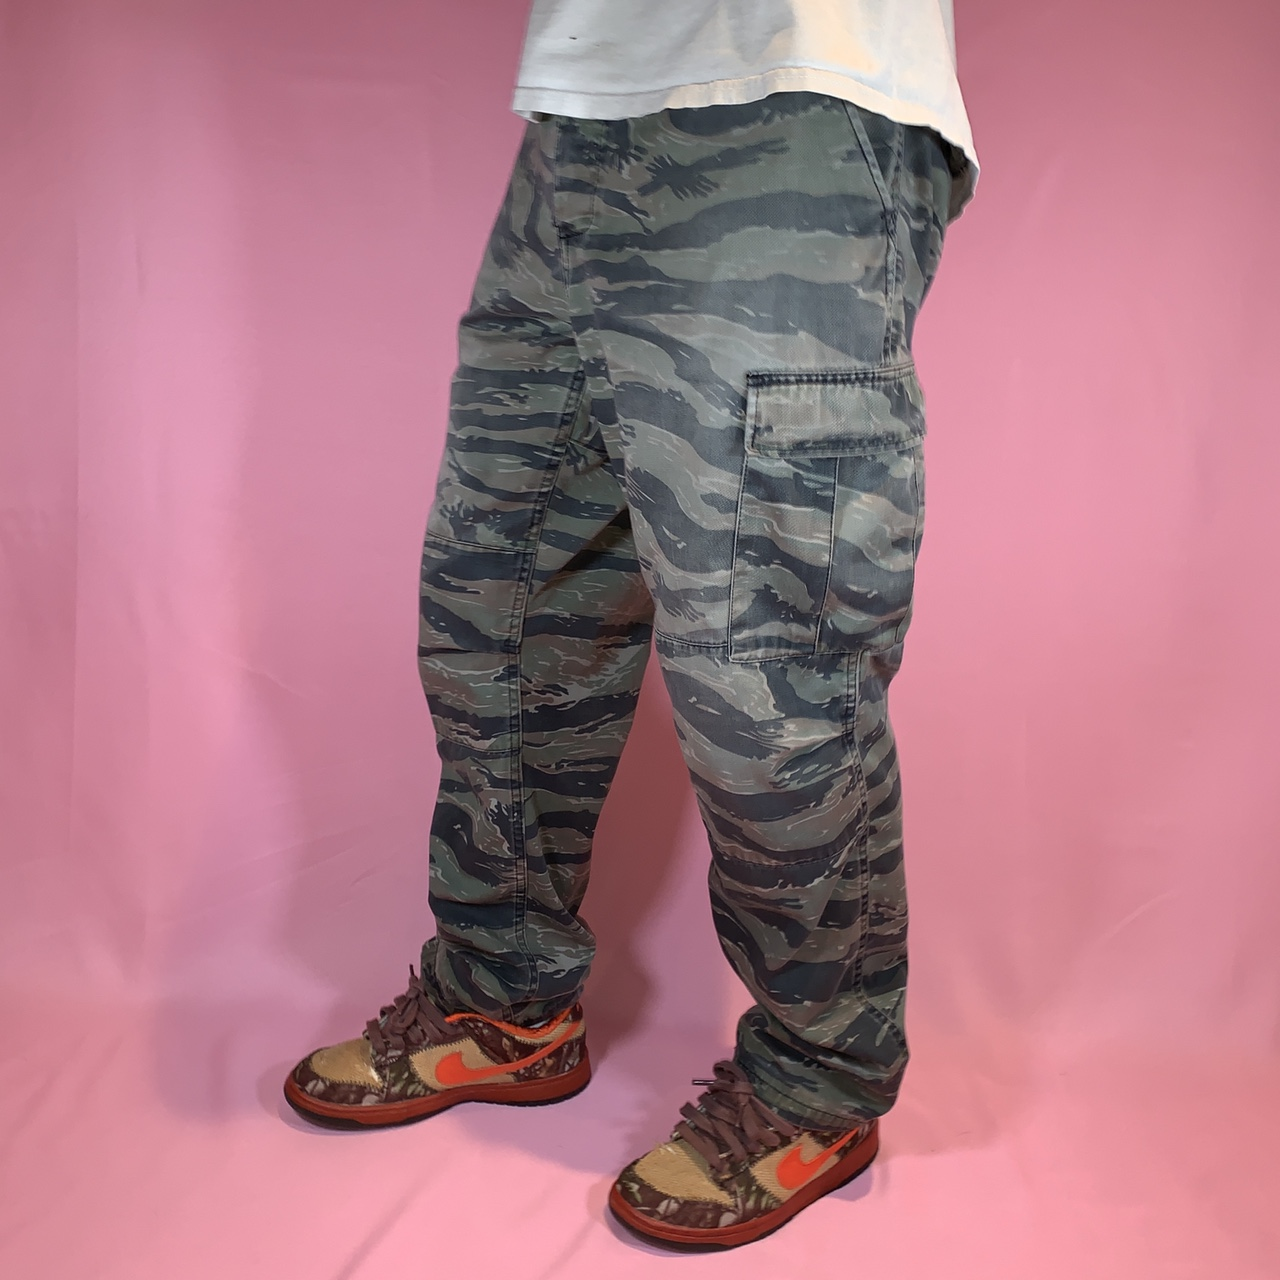 Product Image 1 - Camo military cargo pants  Perfect